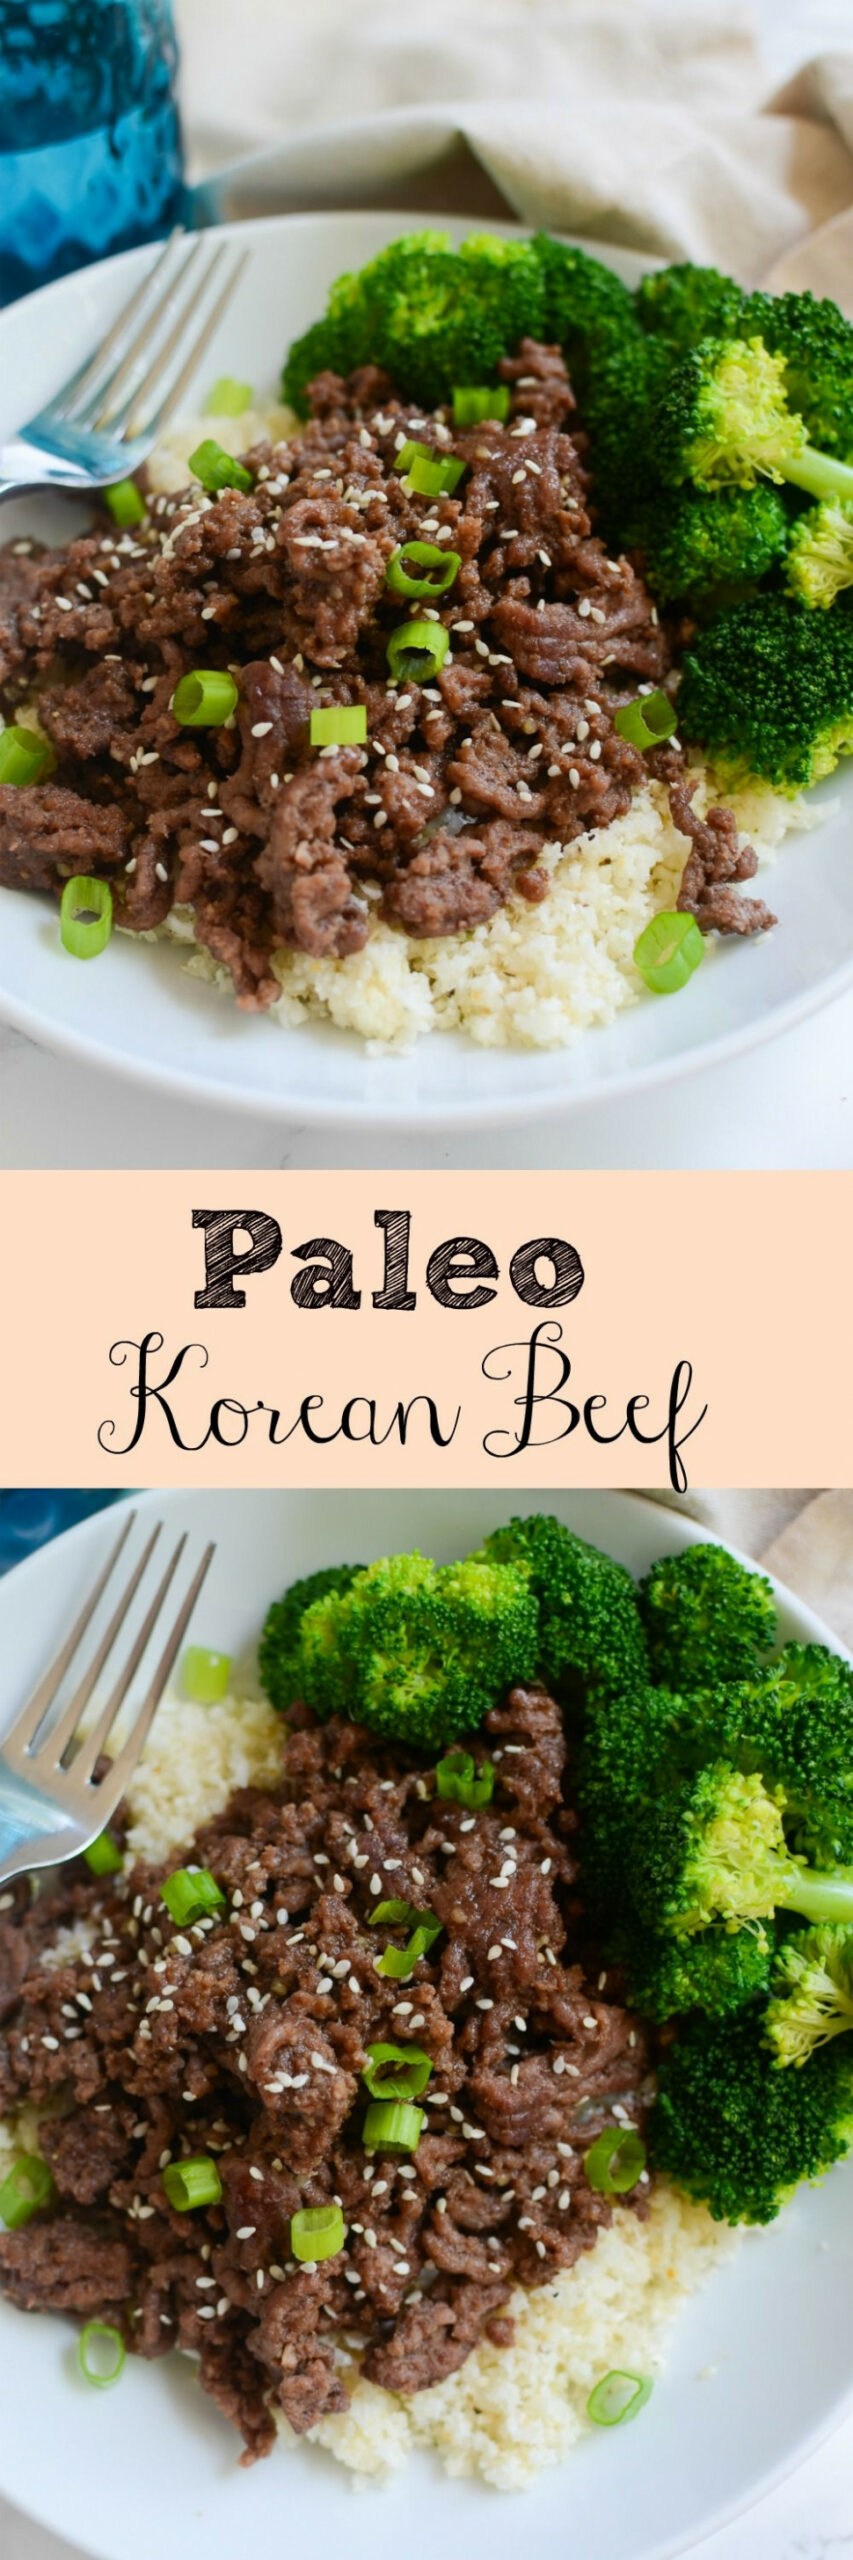 Paleo Korean Beef Bowls - delicious 20 minute meal! Spicy ..